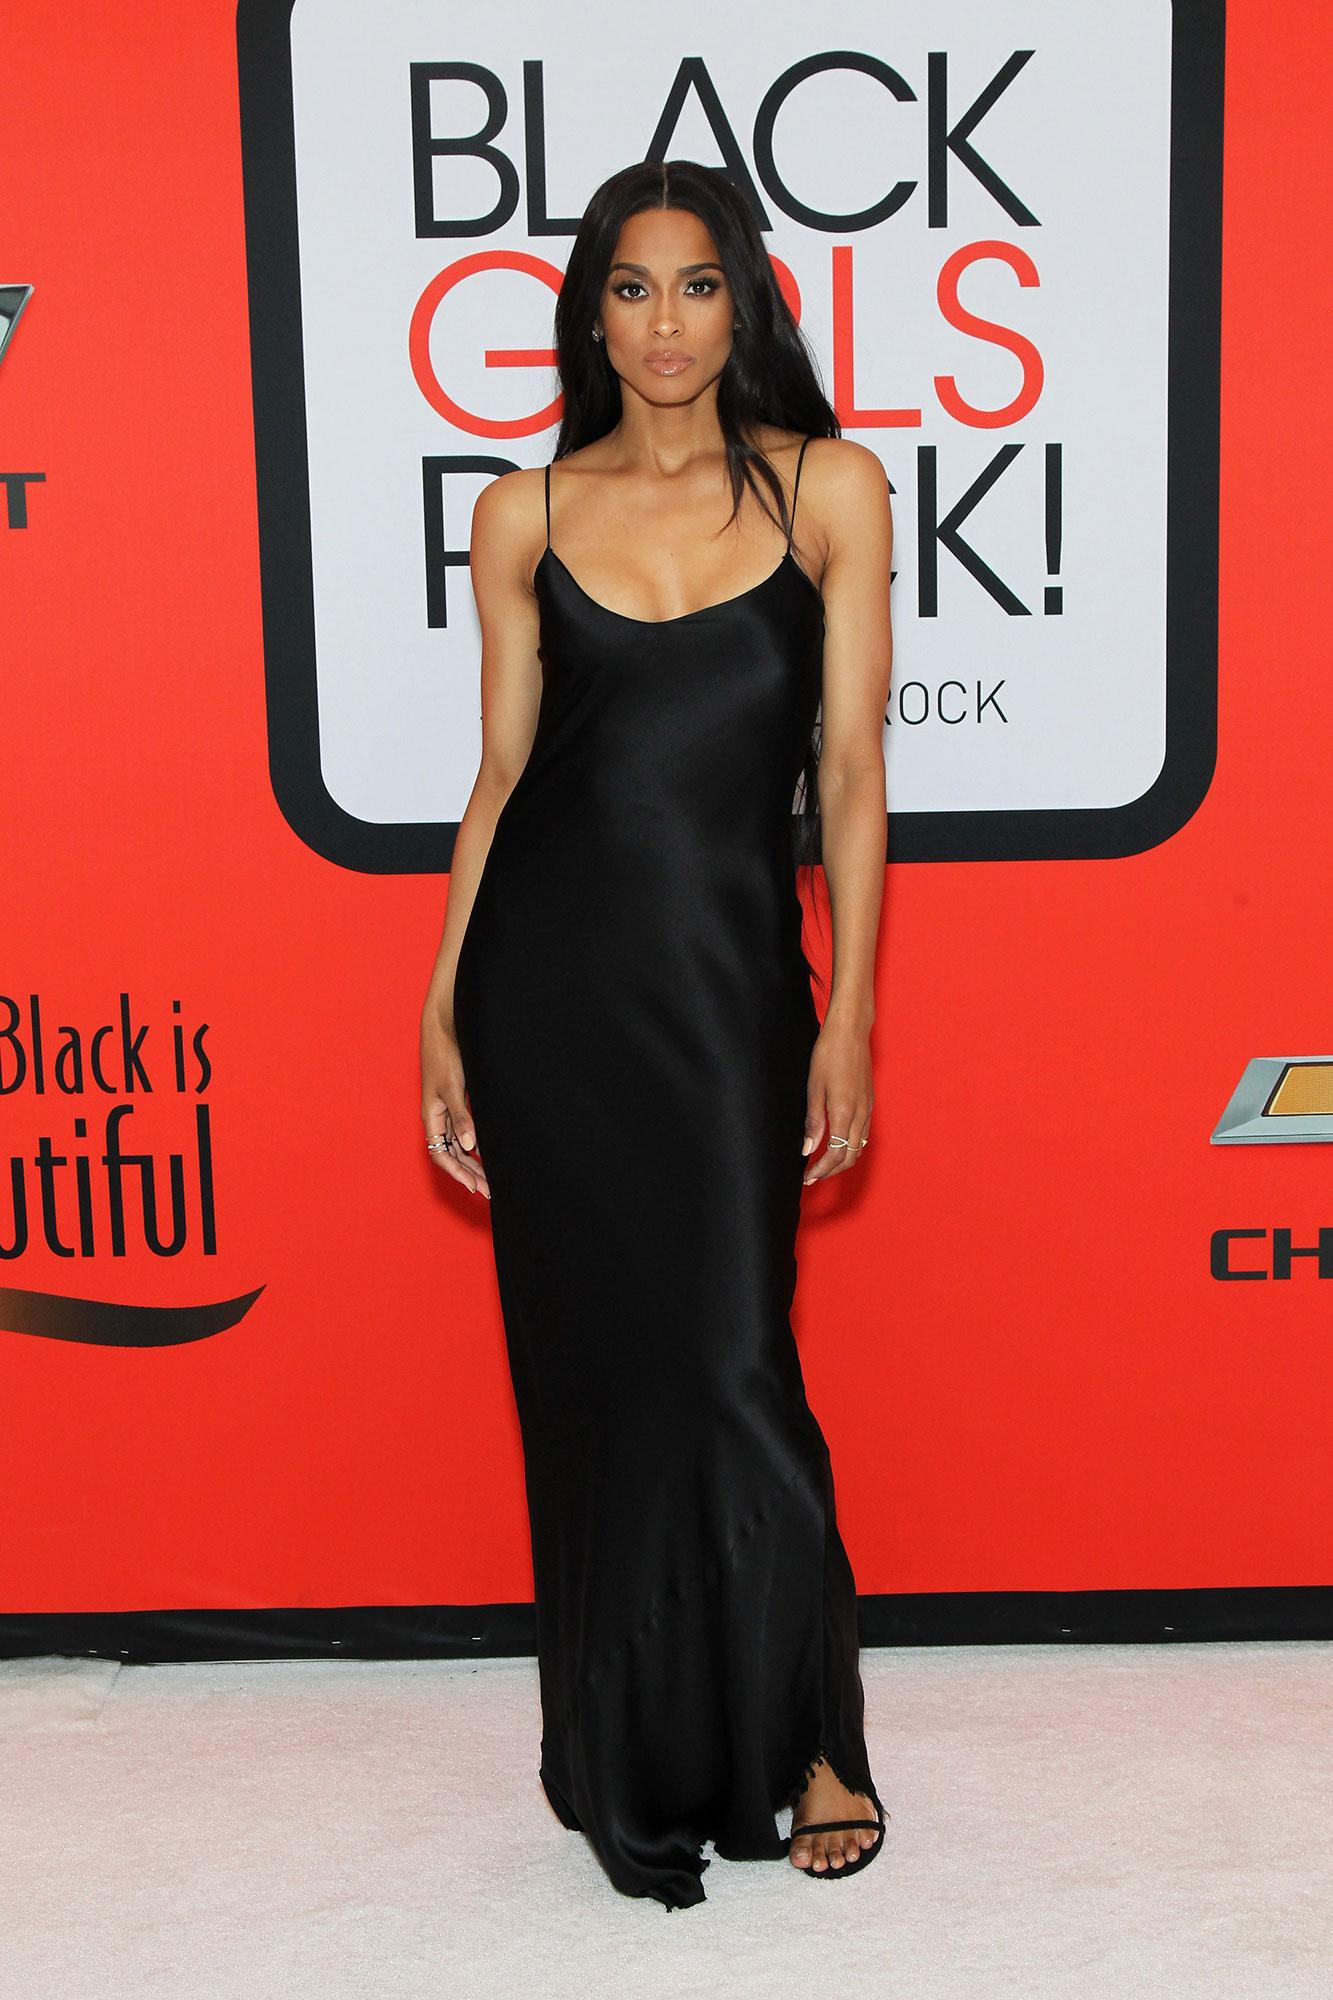 .@Ciara proves less is more in a chic LBD by @NiliLotan: http://t.co/myMCK7RdAV http://t.co/qfc31K3vRo